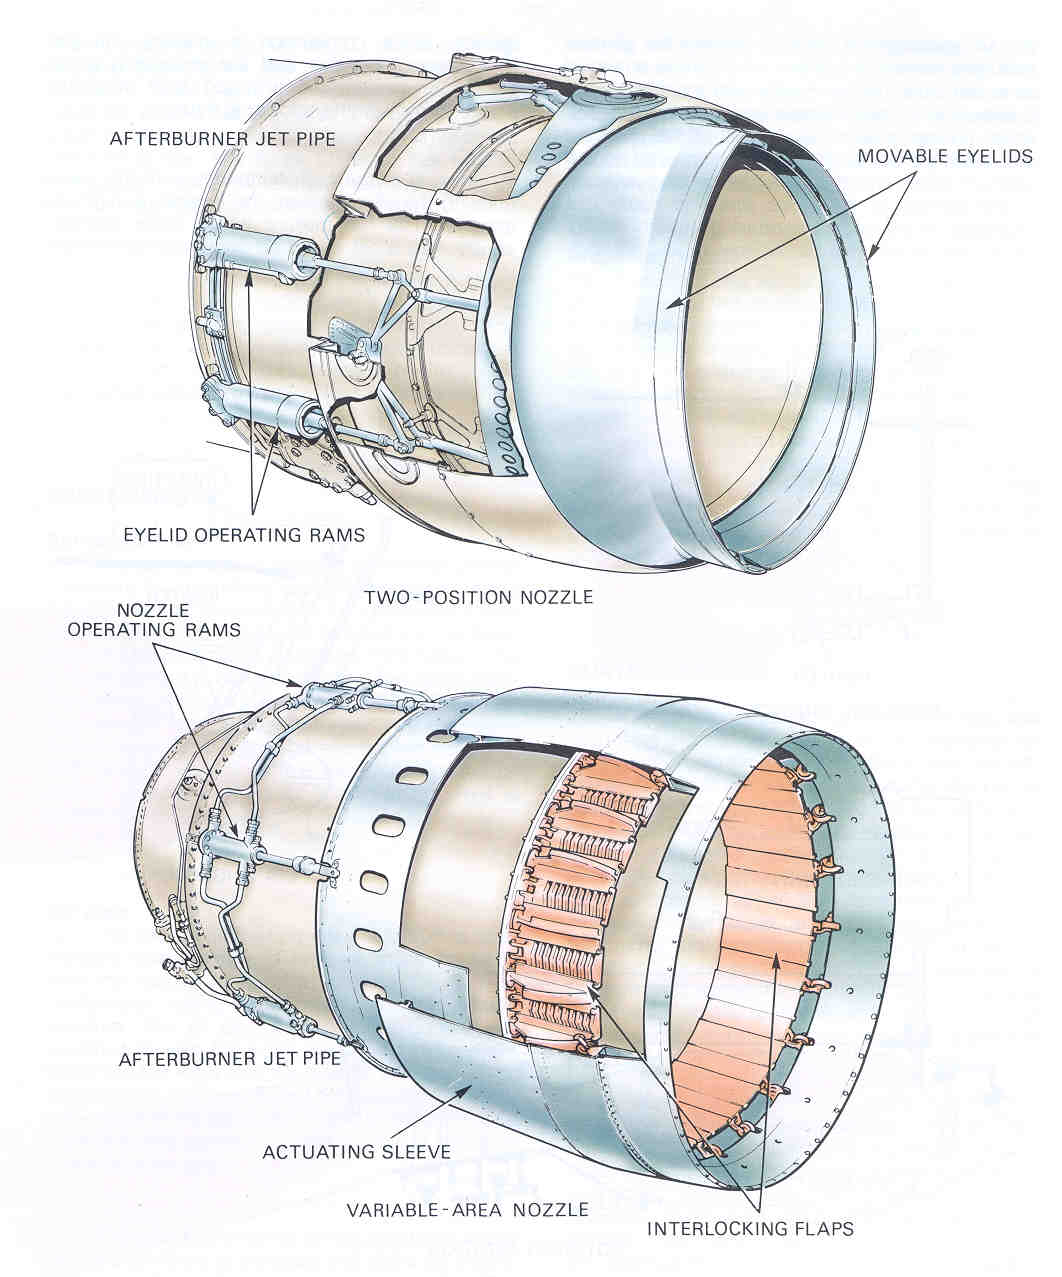 rolls royce turbofan engine diagram boeing 787 engines